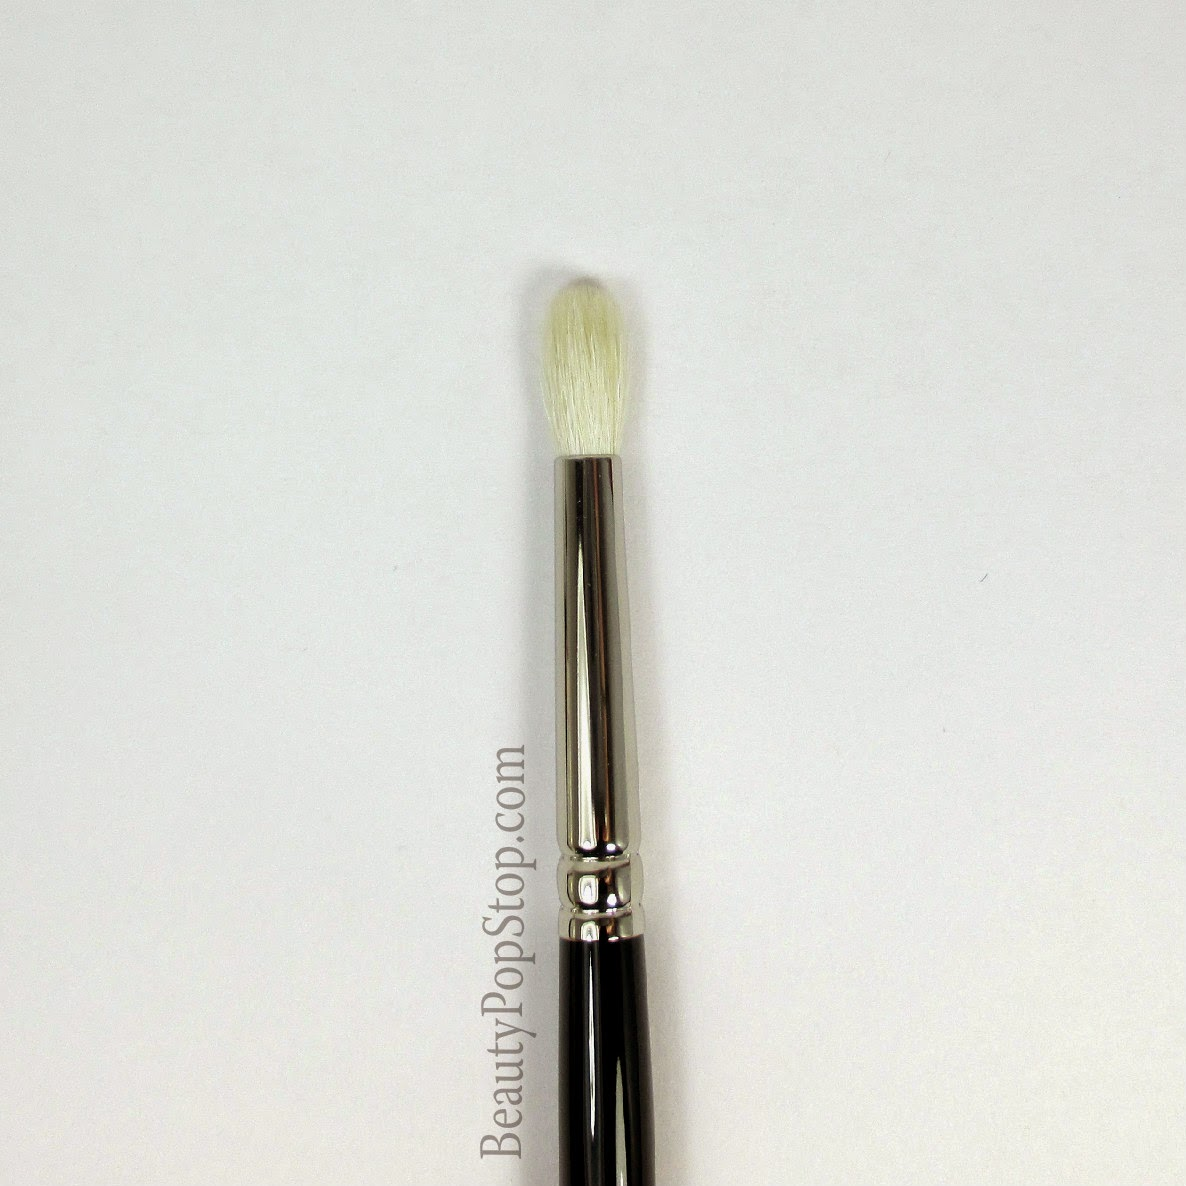 hakuhodo j5529 japanese makeup brush review